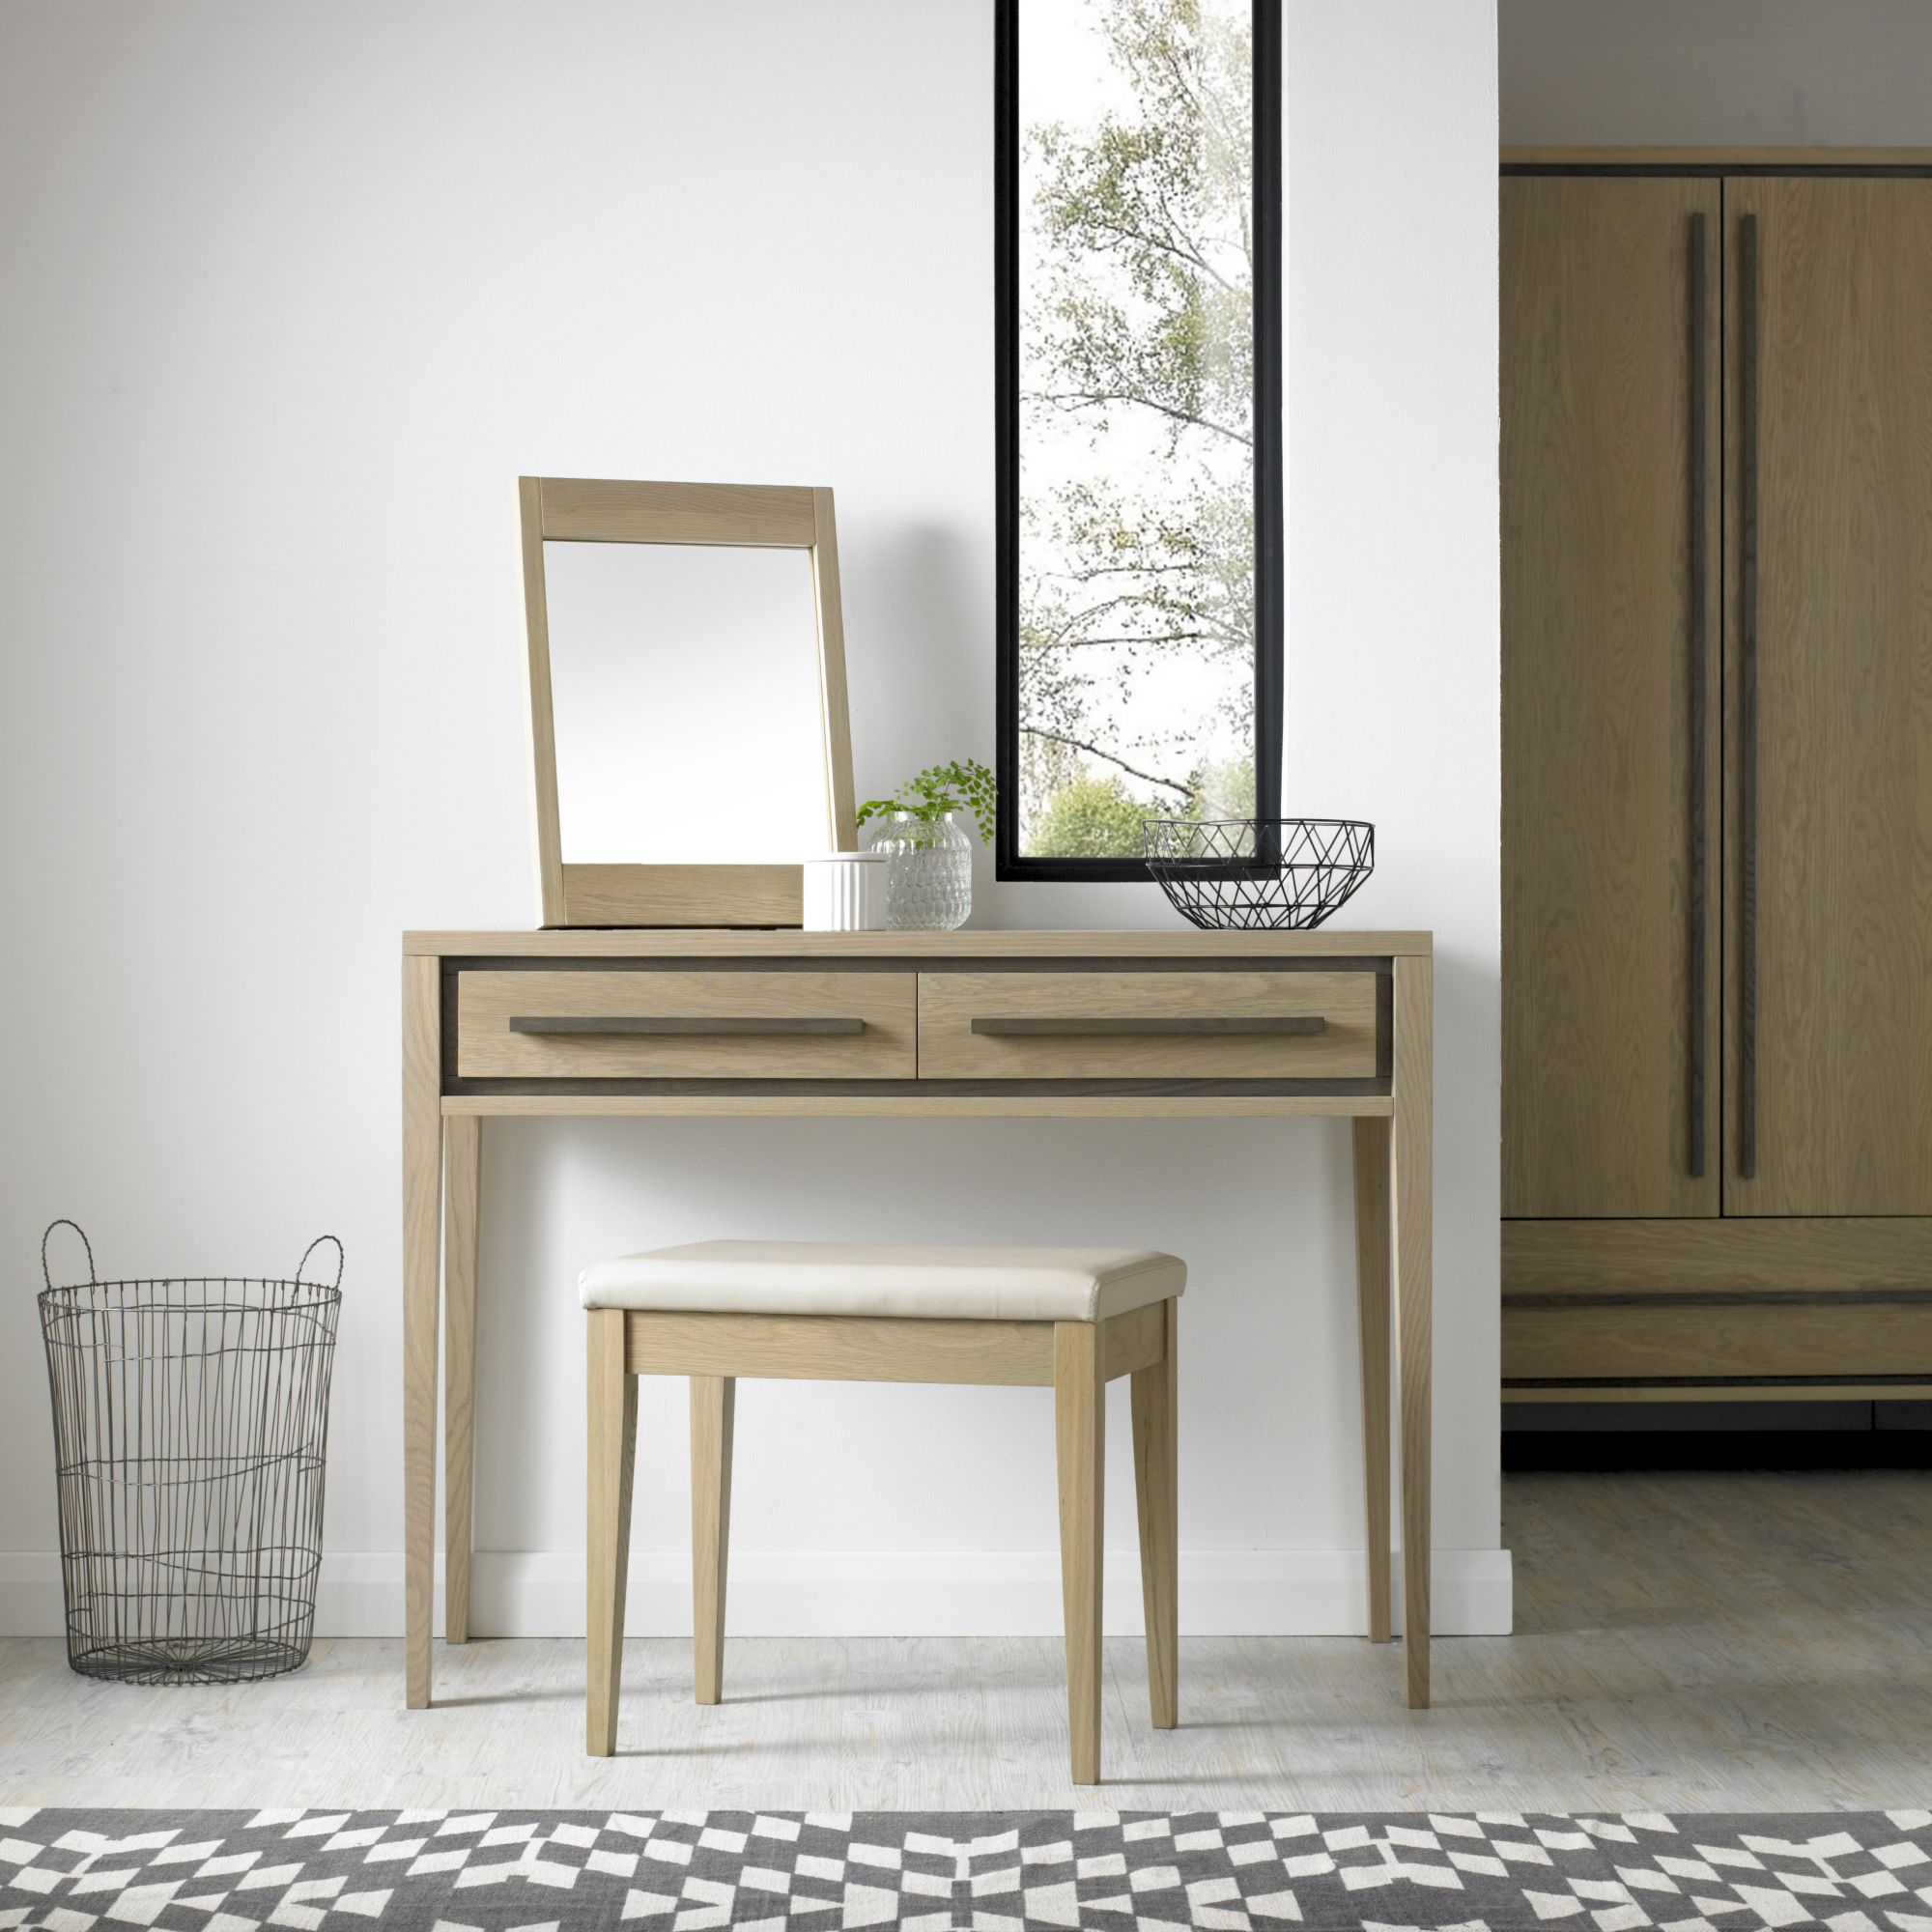 CARELL DRESSING TABLE - L107cm x D45cm x H81cm